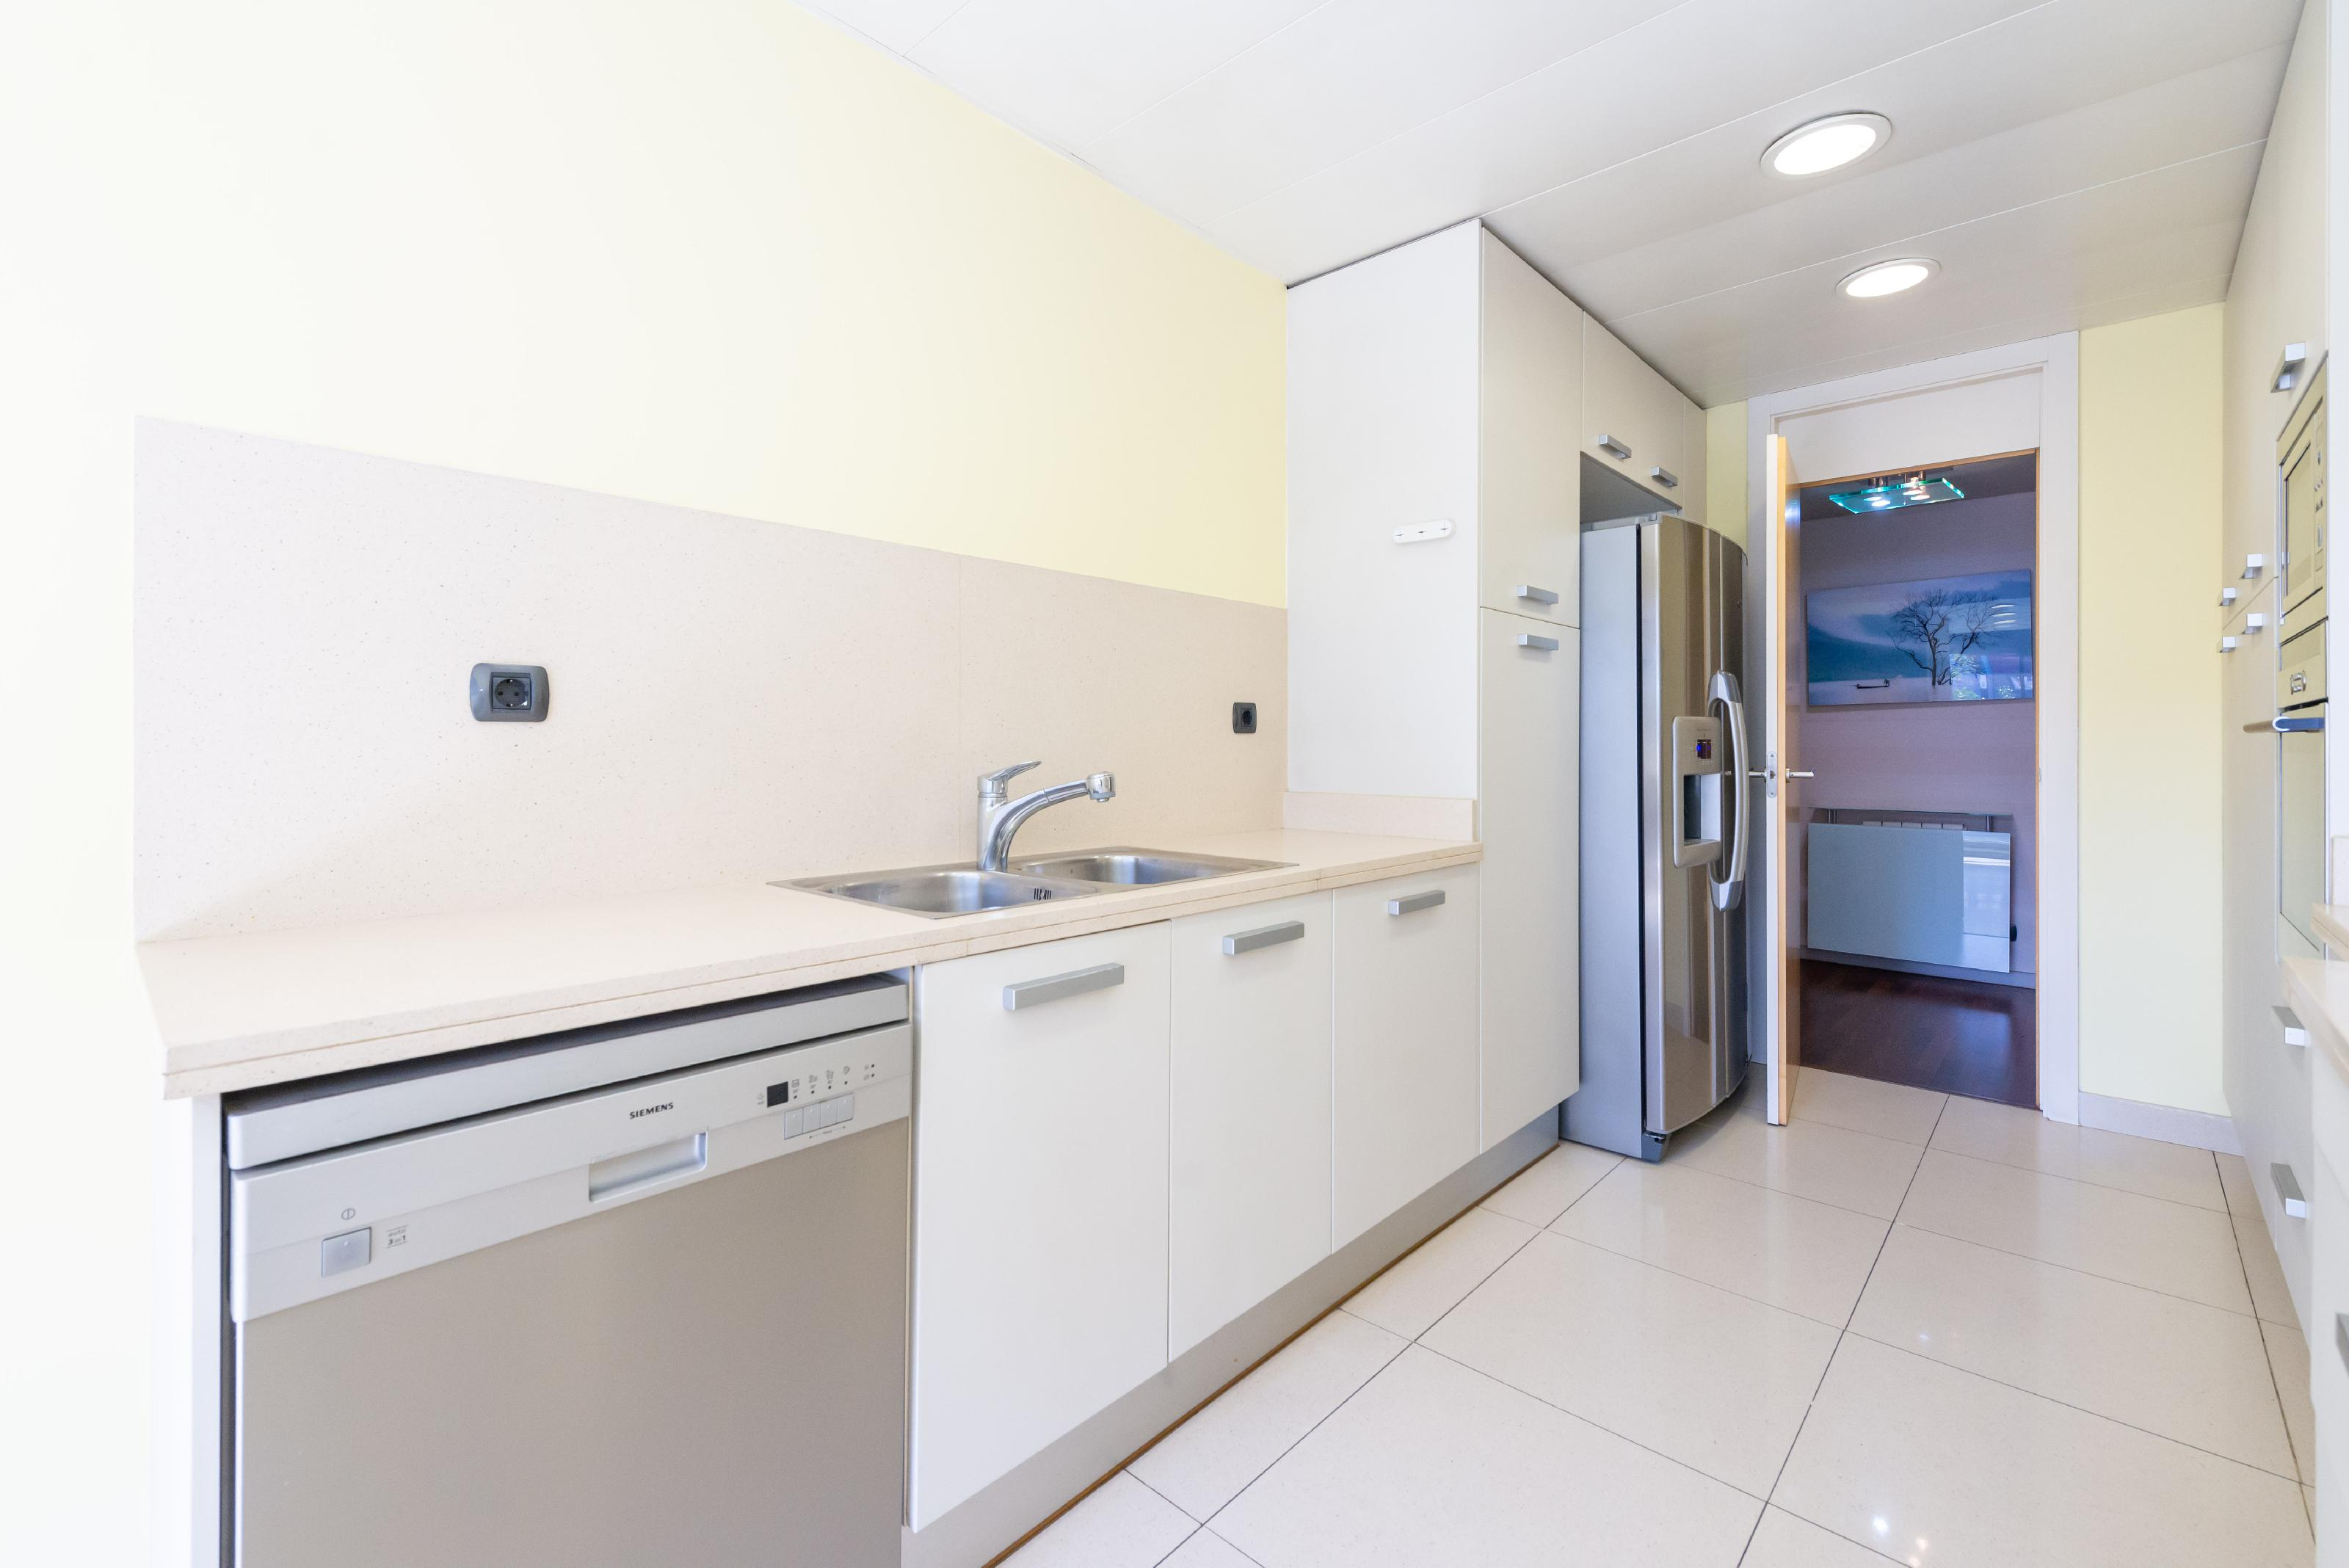 246682 Flat for sale in Gràcia, Vallcarca and Els Penitents 21